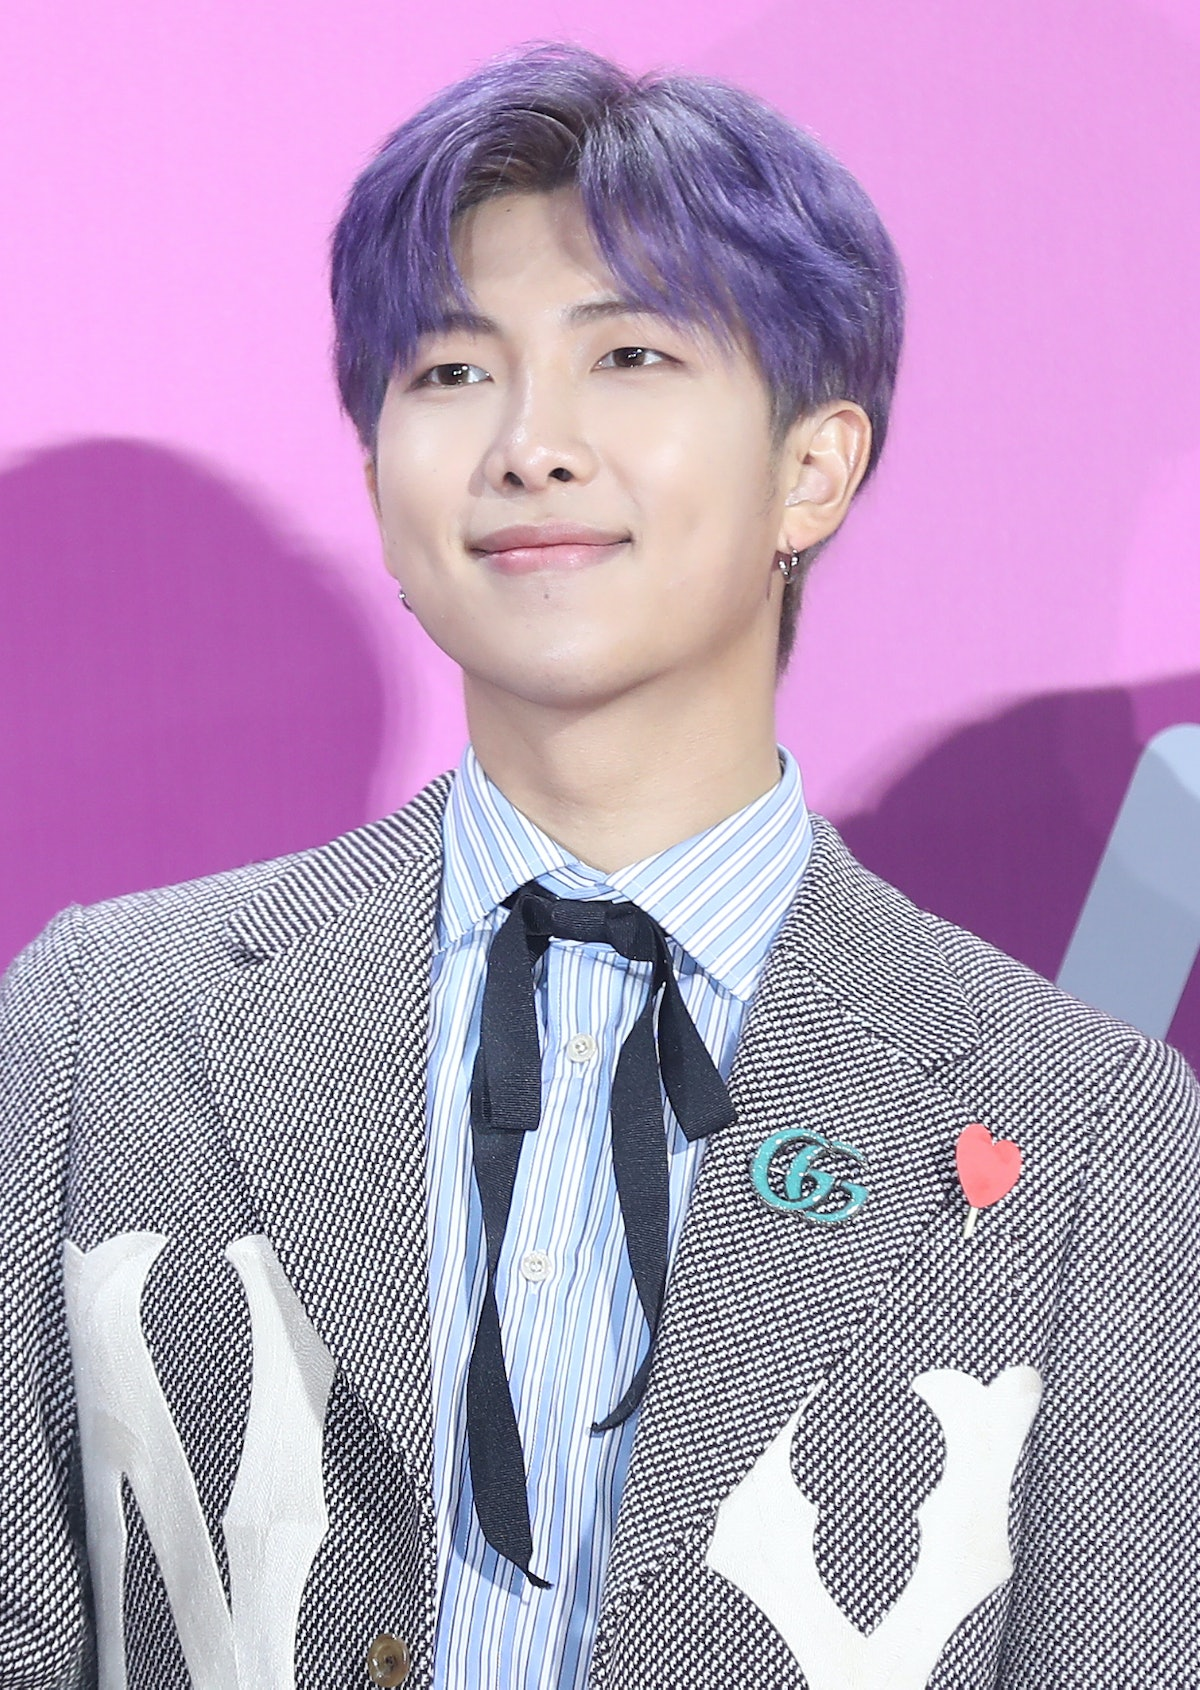 SEOUL, SOUTH KOREA - DECEMBER 01: RM of BTS attends the 2018 Melon Music Awards at Gocheok Sky Dome on December 01, 2018 in Seoul, South Korea. (Photo by JTBC PLUS/Imazins via Getty Images)